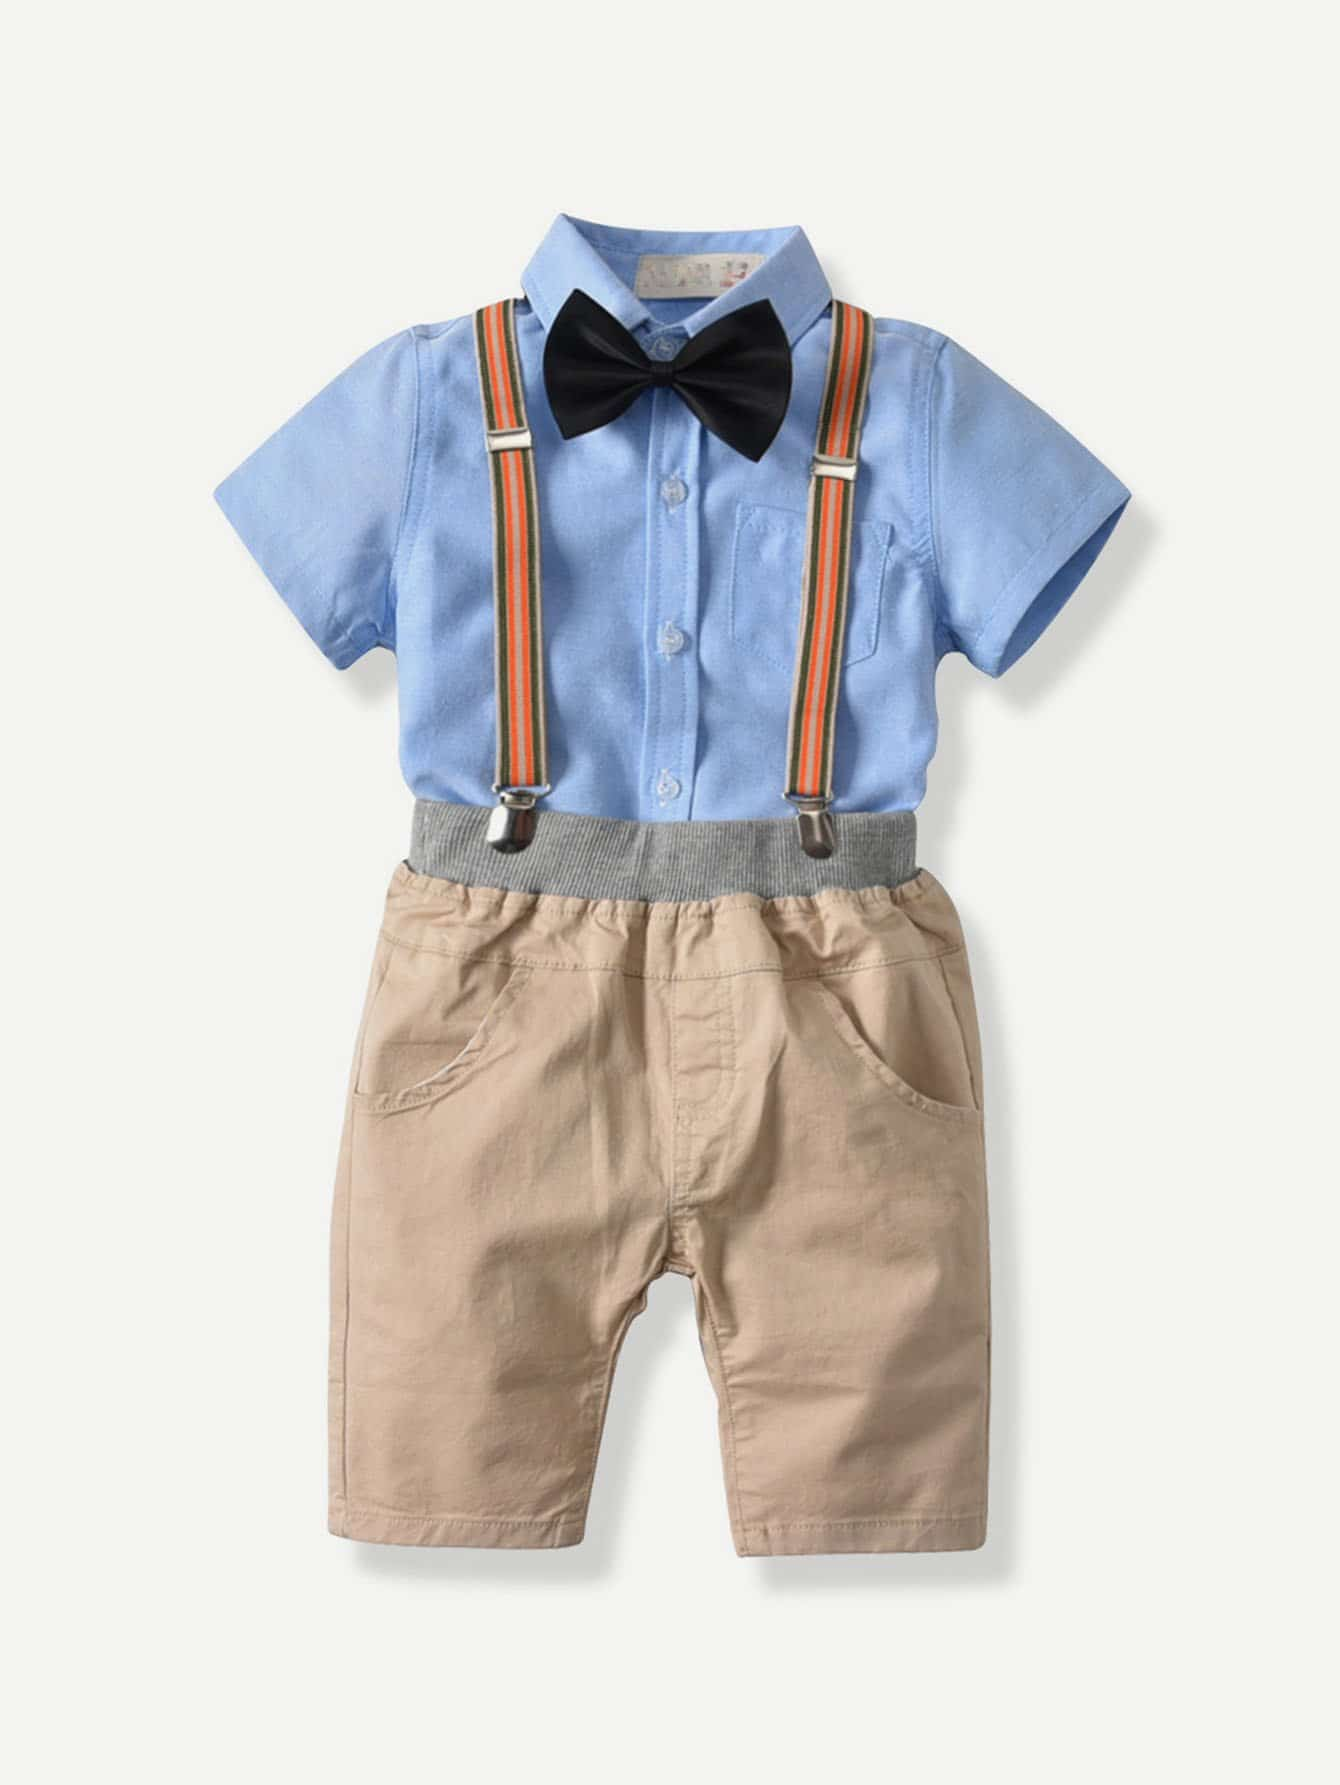 Kids Tie Detail Blouse With Overall Shorts obi tie outerwear with epaulet detail